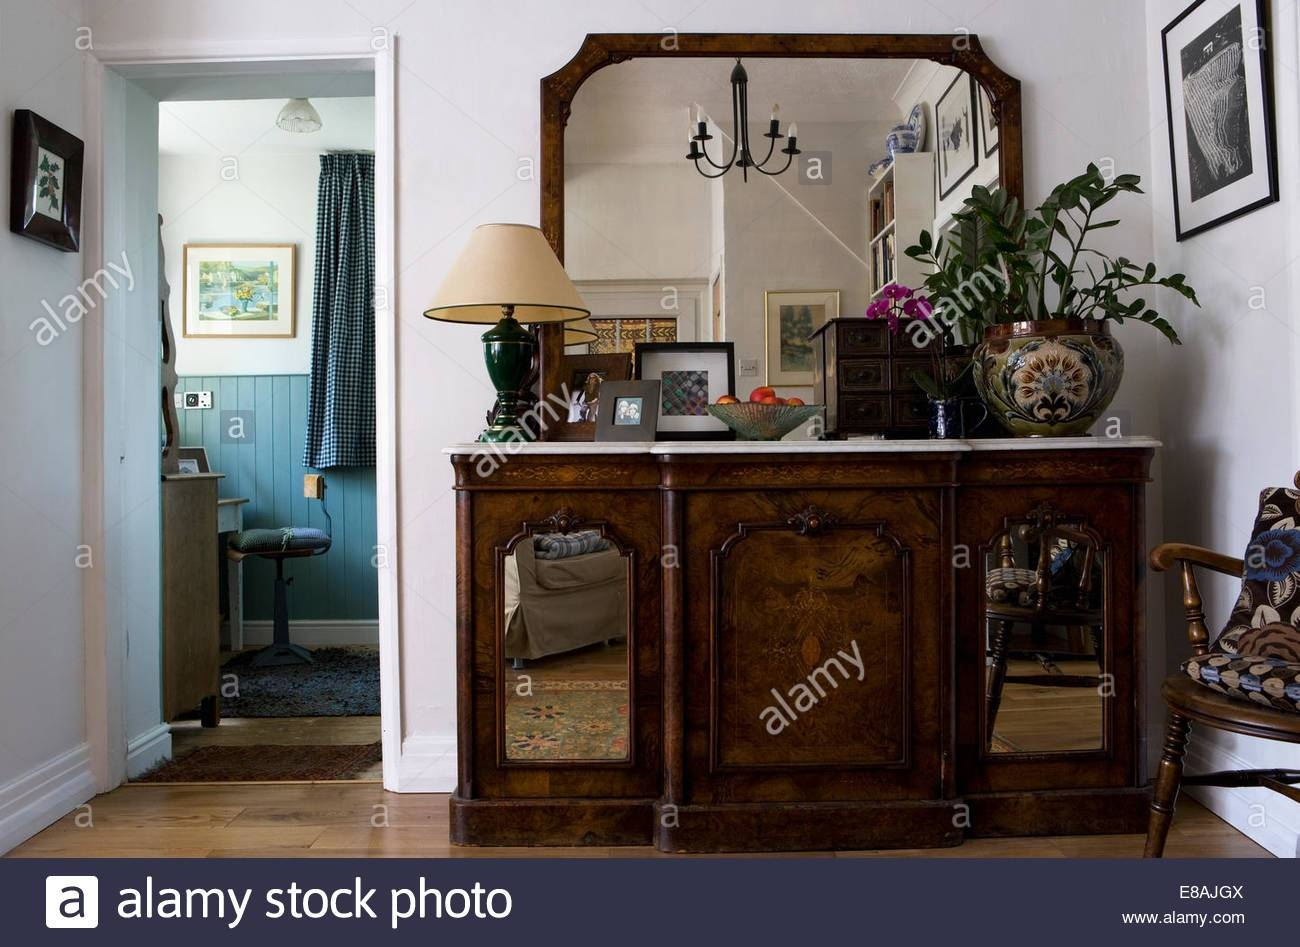 Large Mirror Above Marble Topped Antique Sideboard With Mirrored Regarding Small Mirrored Sideboards (View 12 of 30)